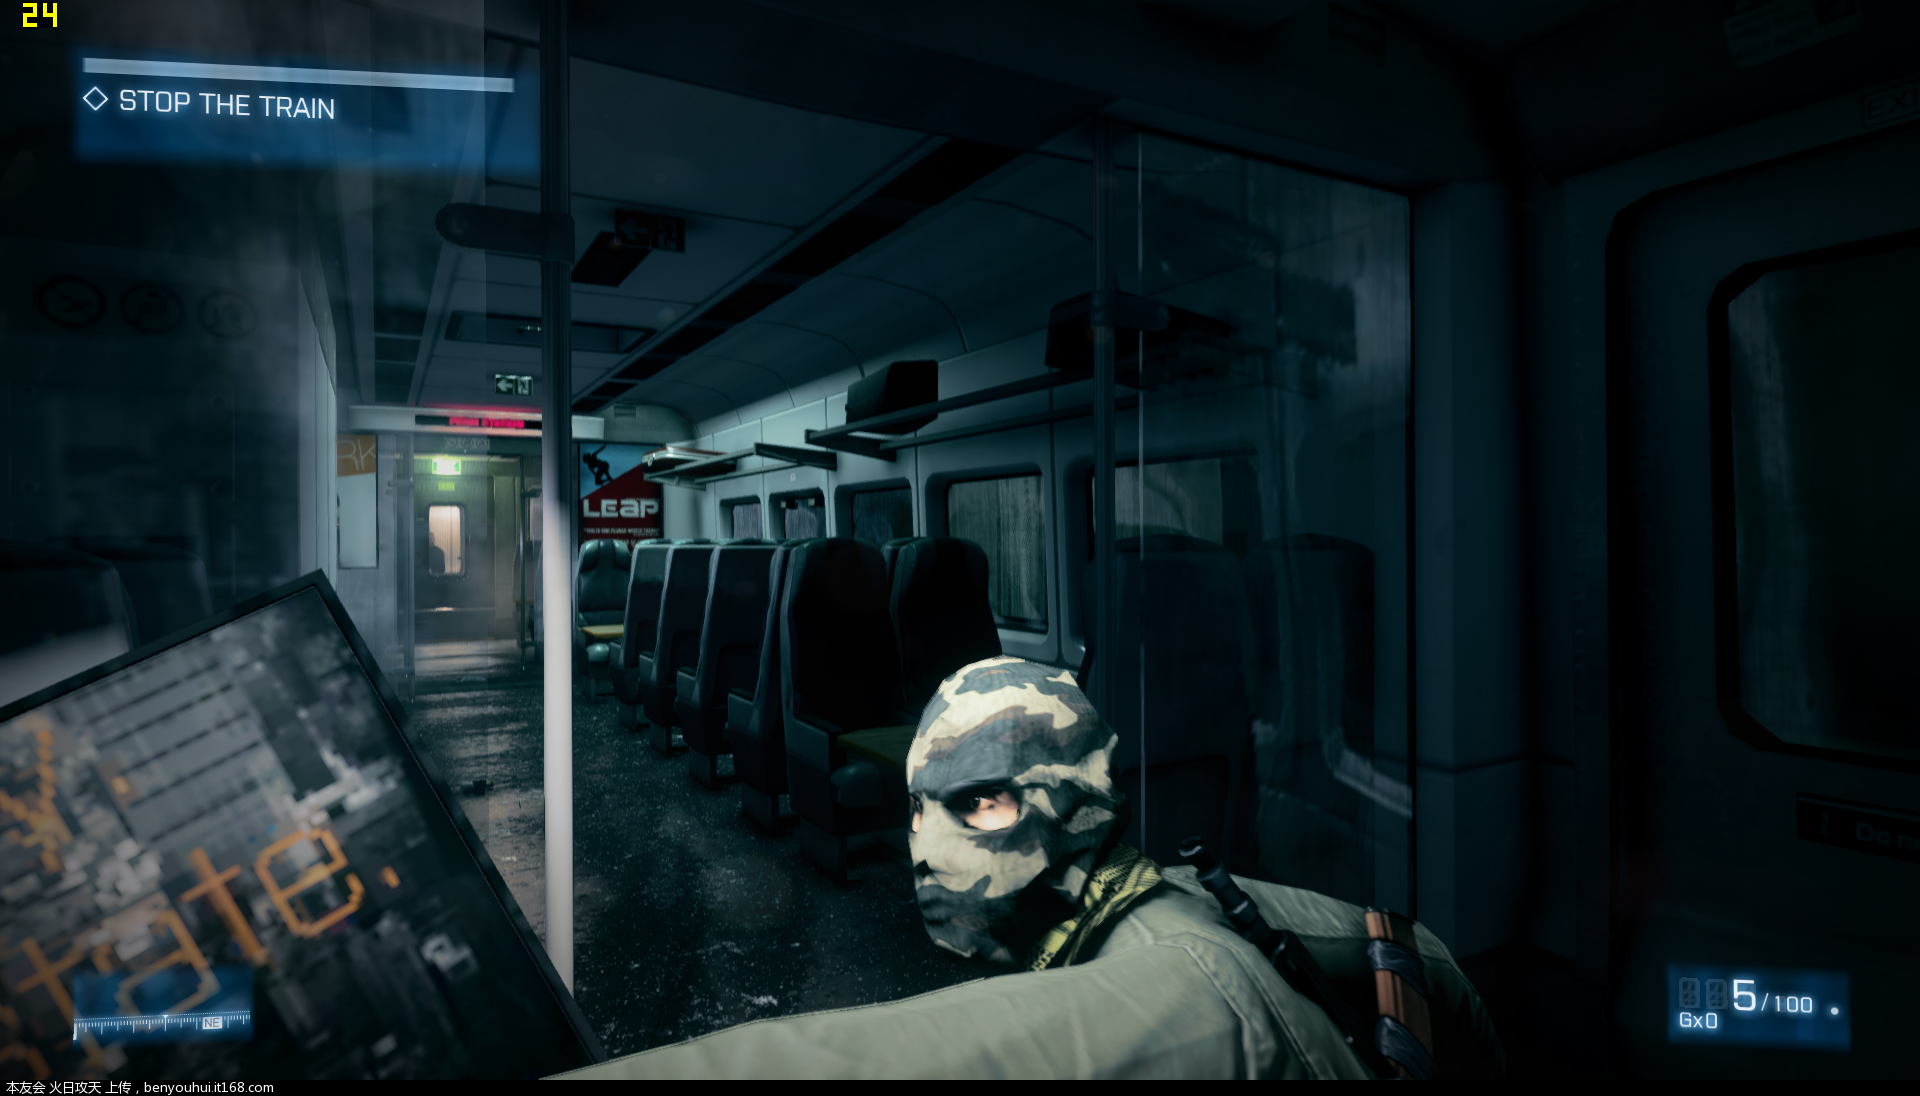 bf3 2012-10-08 17-18-42-69.png